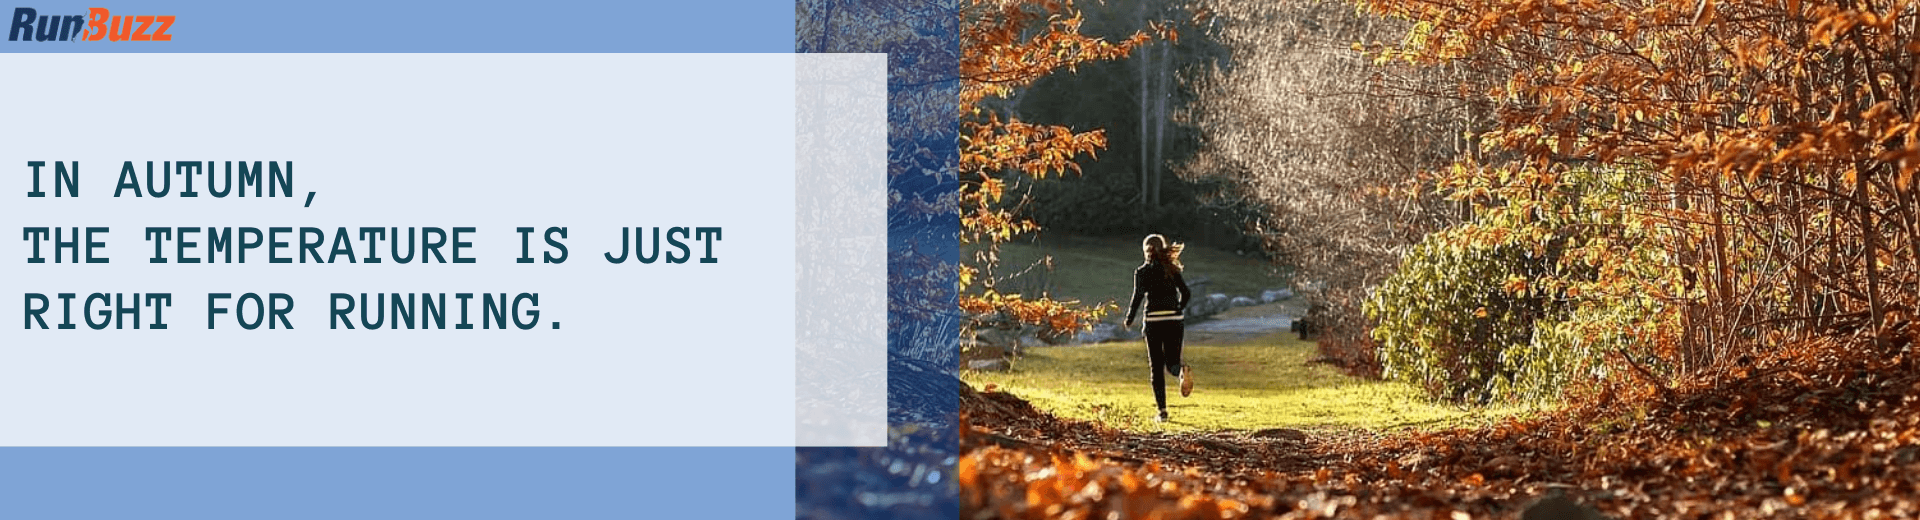 In-autumn-the-temperature-is-just-right-for-running